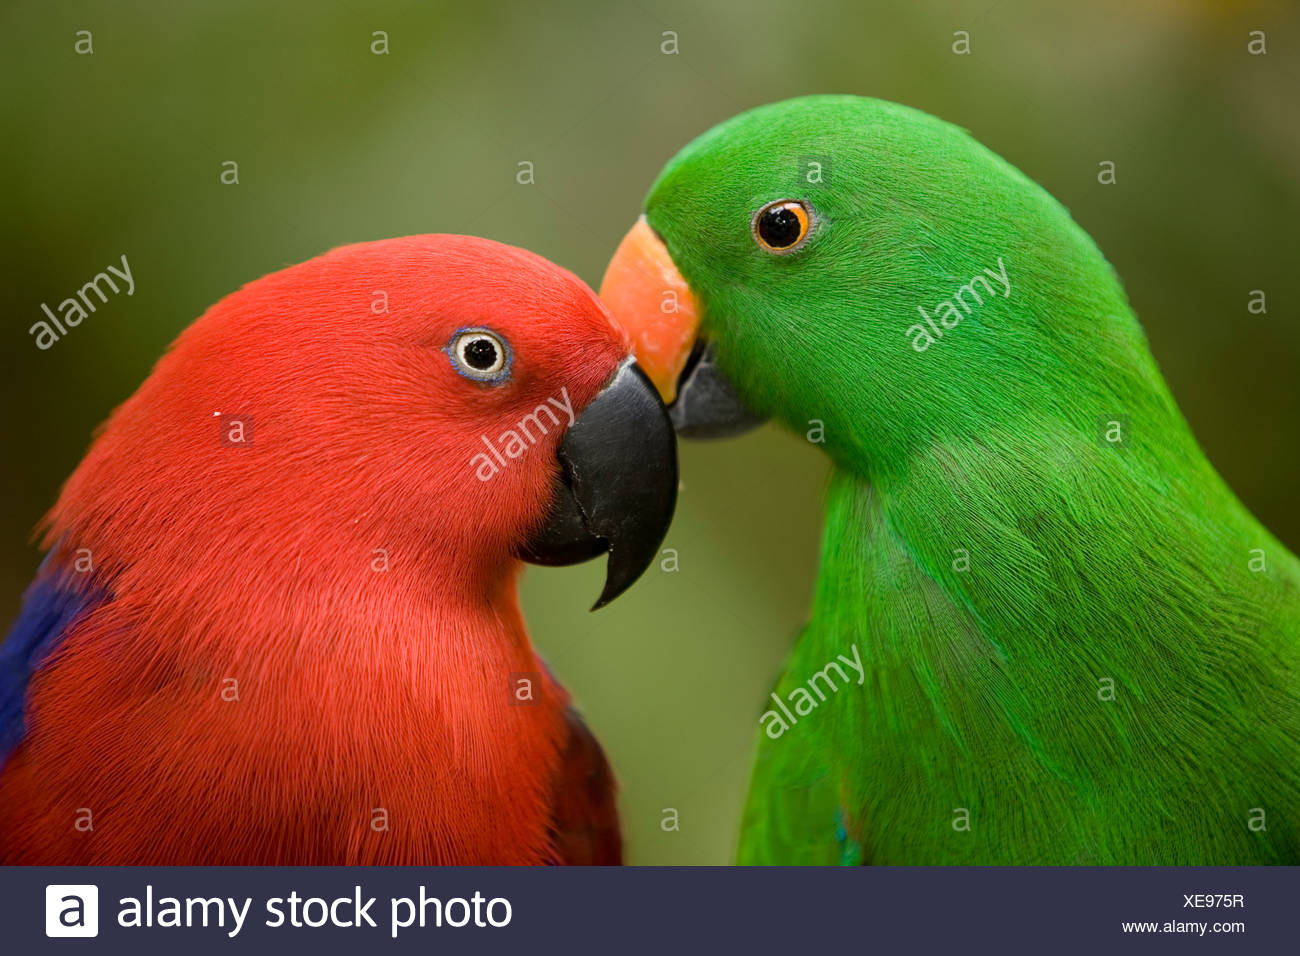 Closeup of male and female Eclectus parrots, respectively. - Stock Image